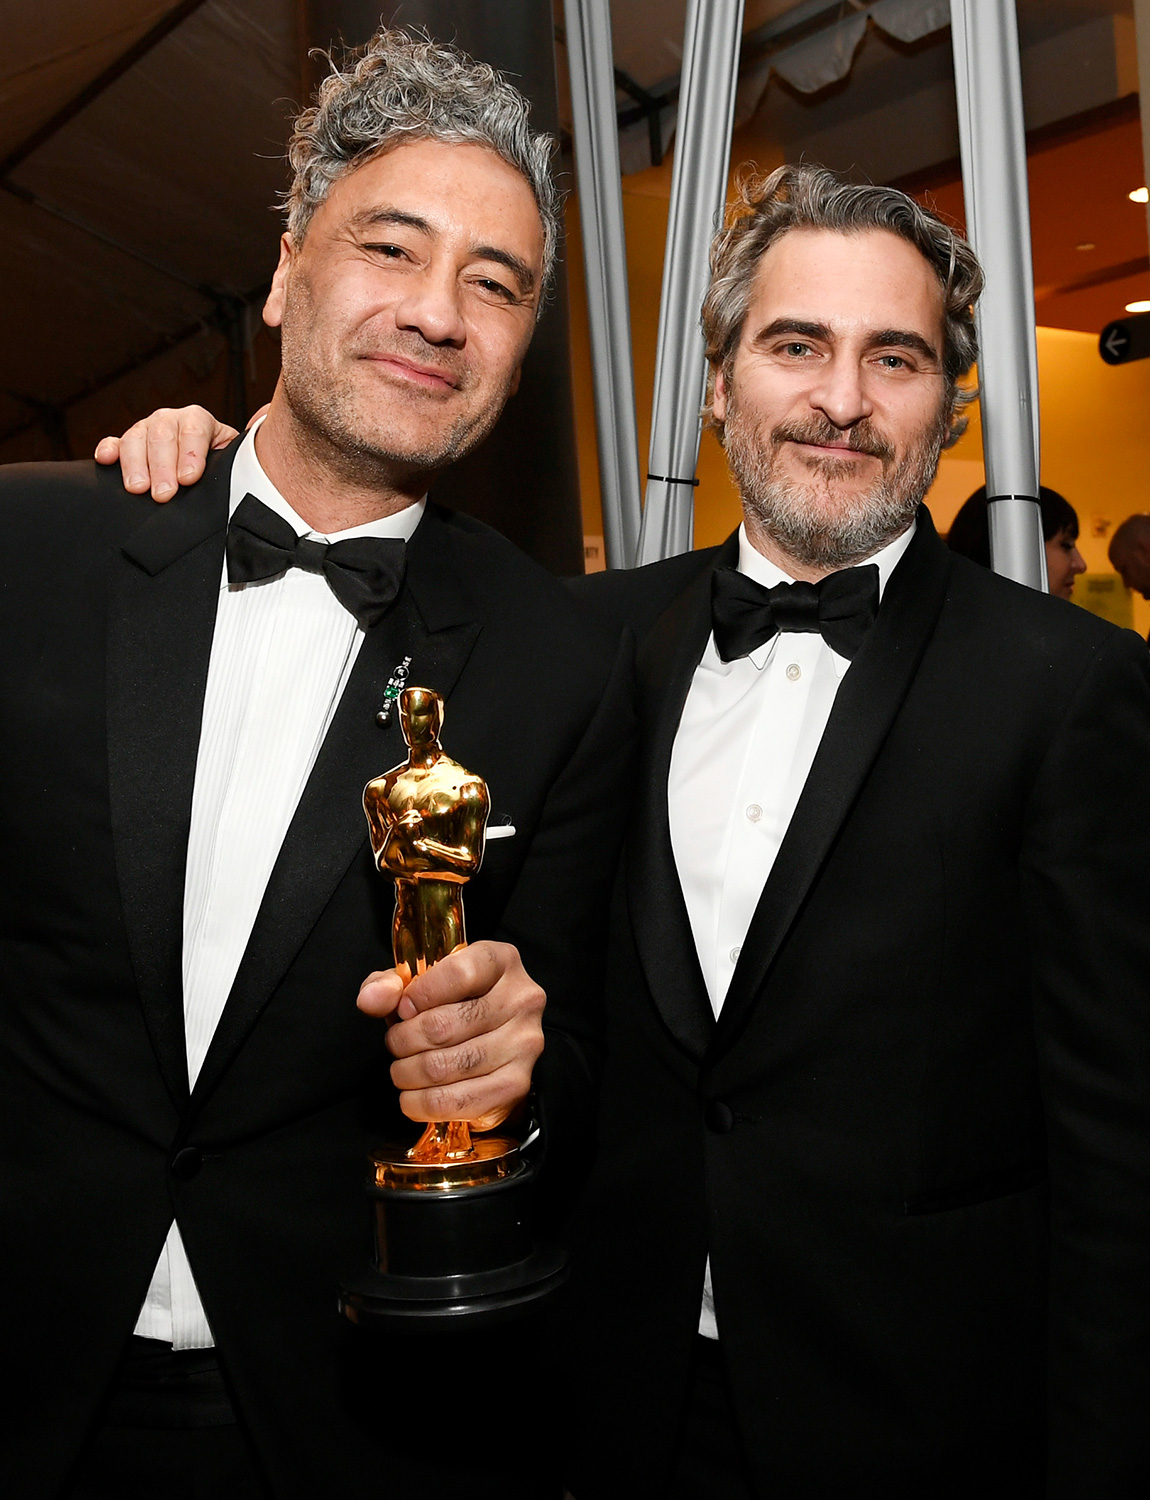 """Director Taika Waititi, winner of the Adapted Screenplay award for """"Jojo Rabbit"""" and Joaquin Phoenix, winner of the Actor in a Leading Role award for """"Joker,"""" attend the 92nd Annual Academy Awards Governors Ball at Hollywood and Highland on February 09, 2020 in Hollywood, California"""